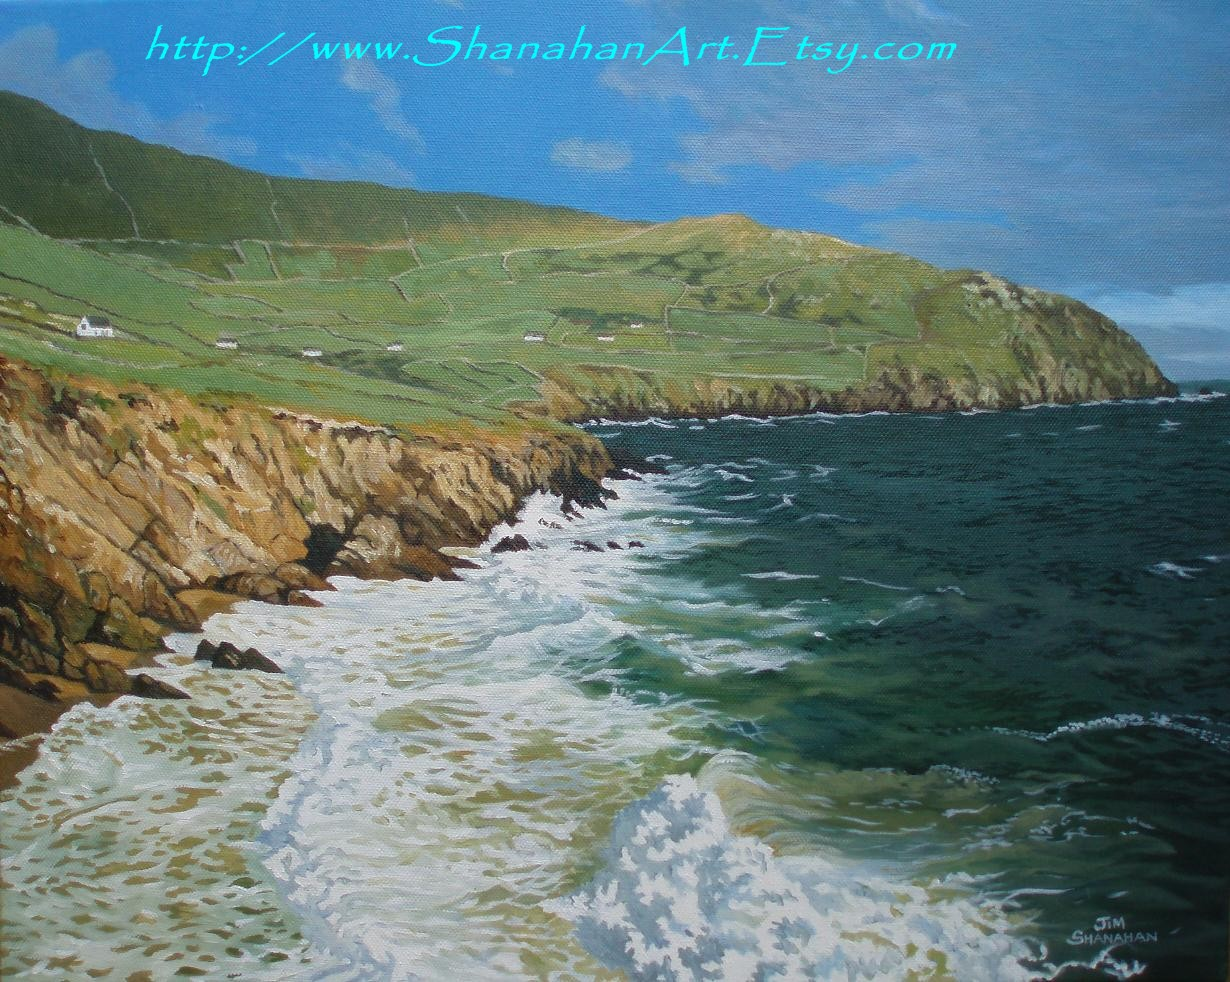 Slea Head -- Sold in Auction